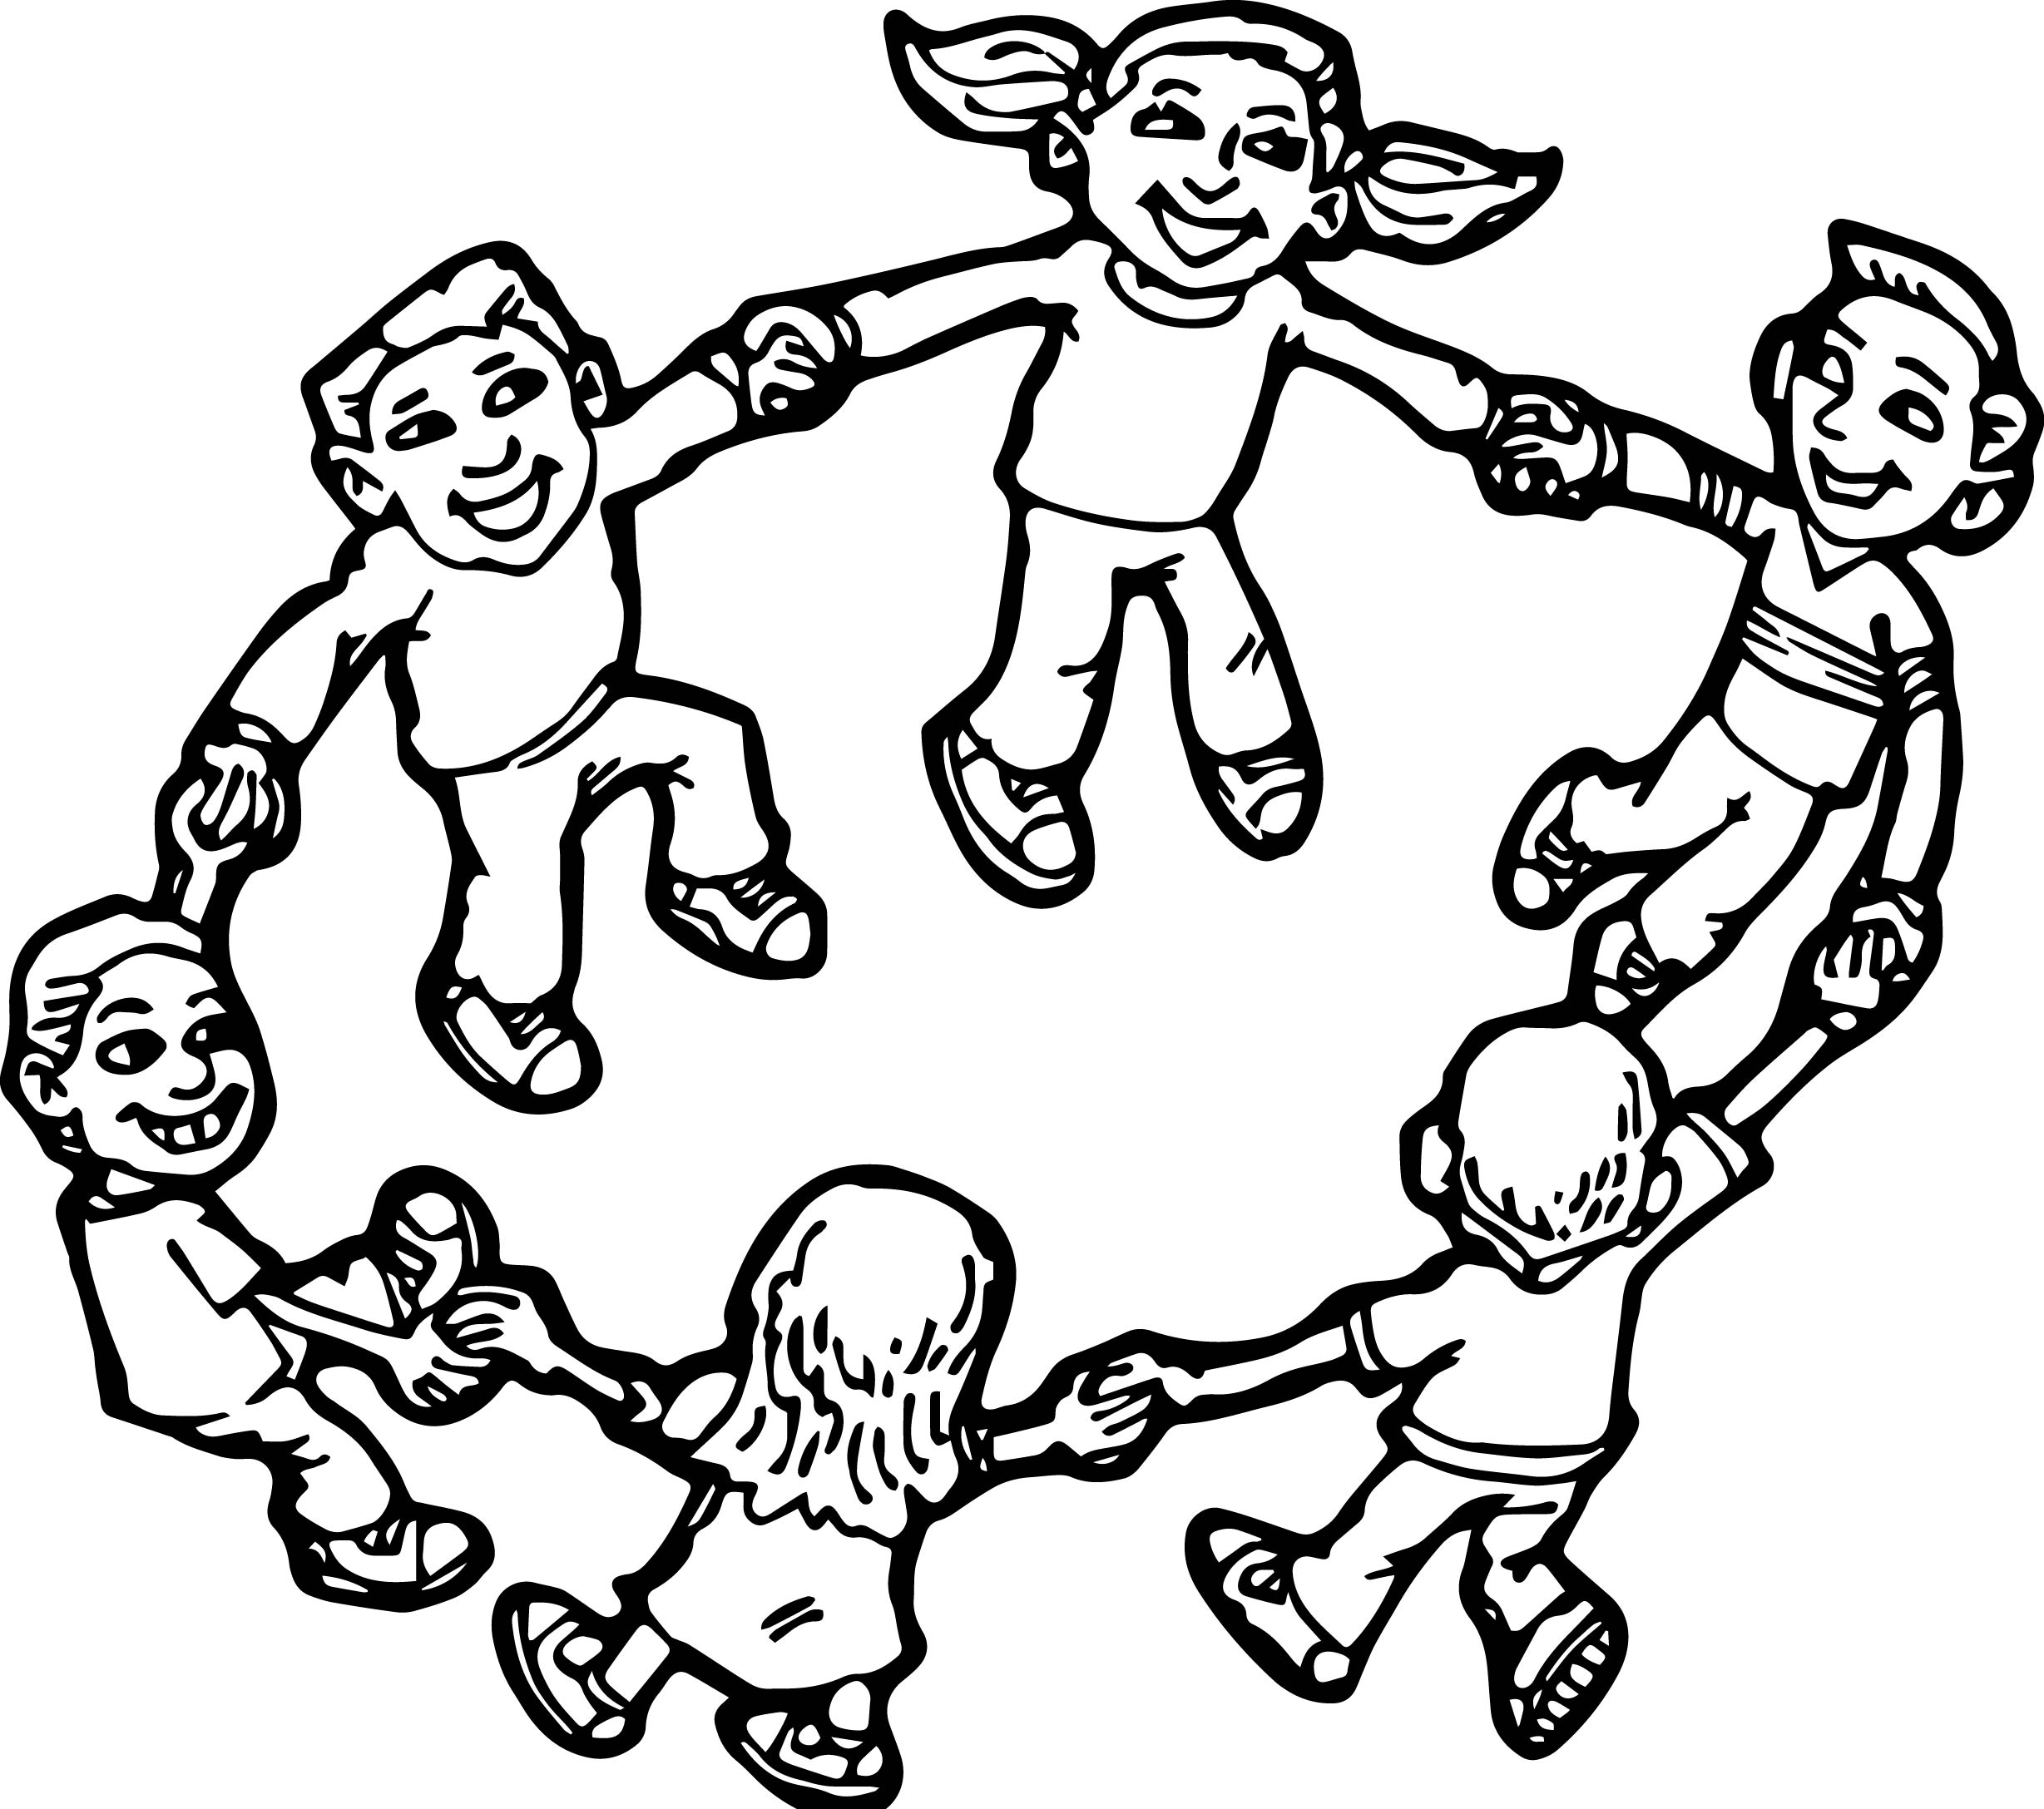 Playground Safety Coloring Pages Coloring Pages